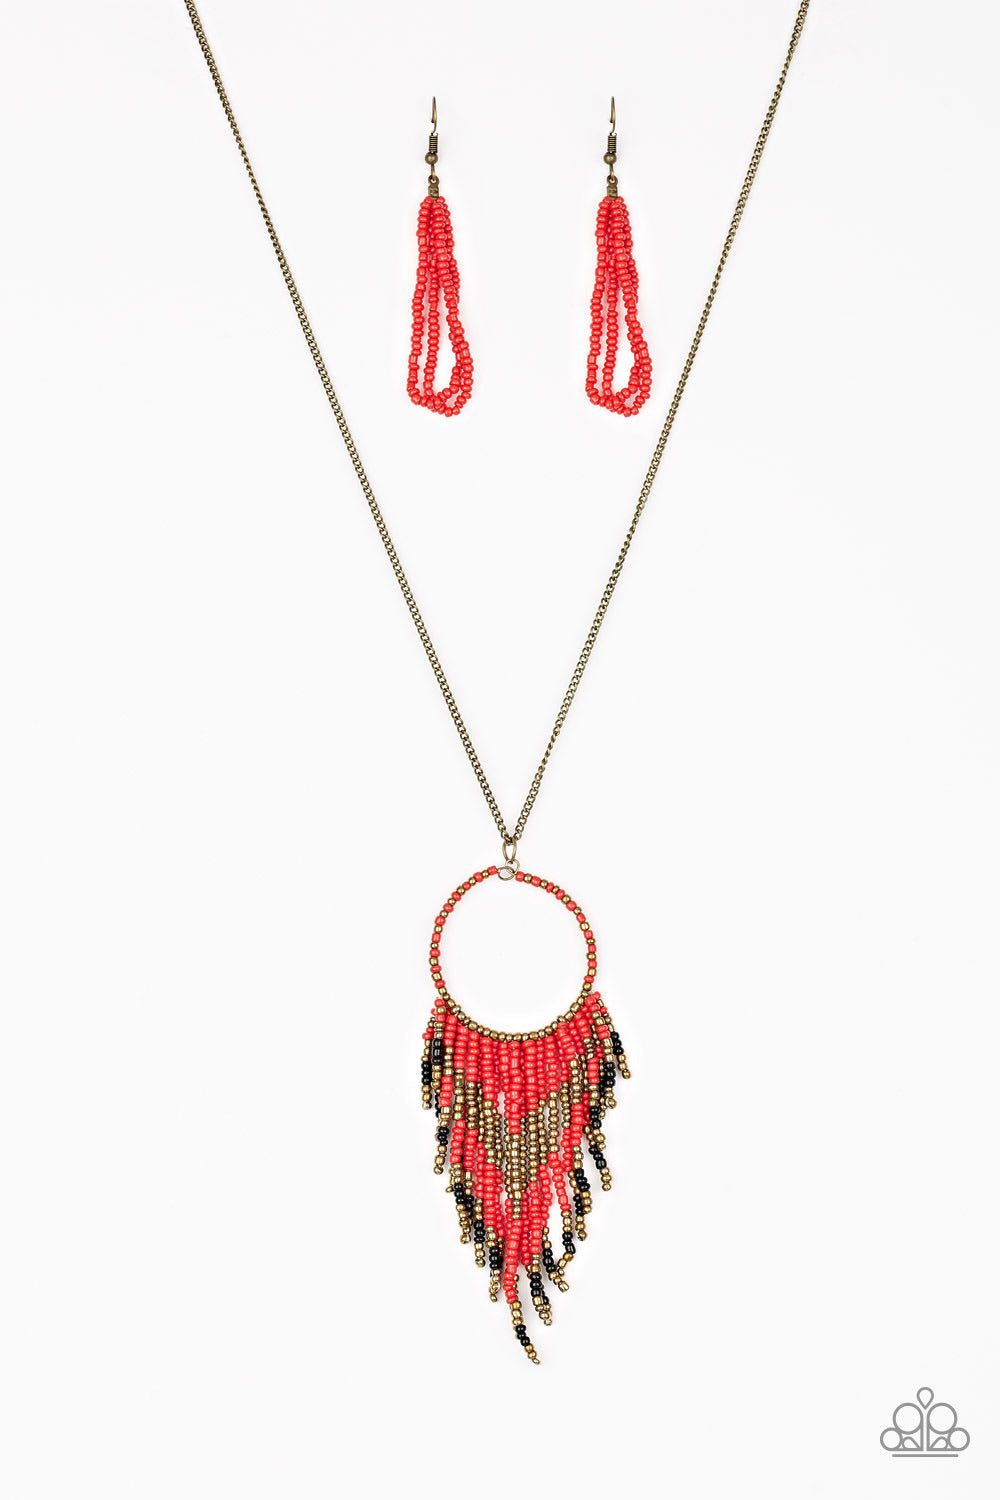 Badlands Beauty - Red Seed Bead Necklace - Paparazzi Accessories